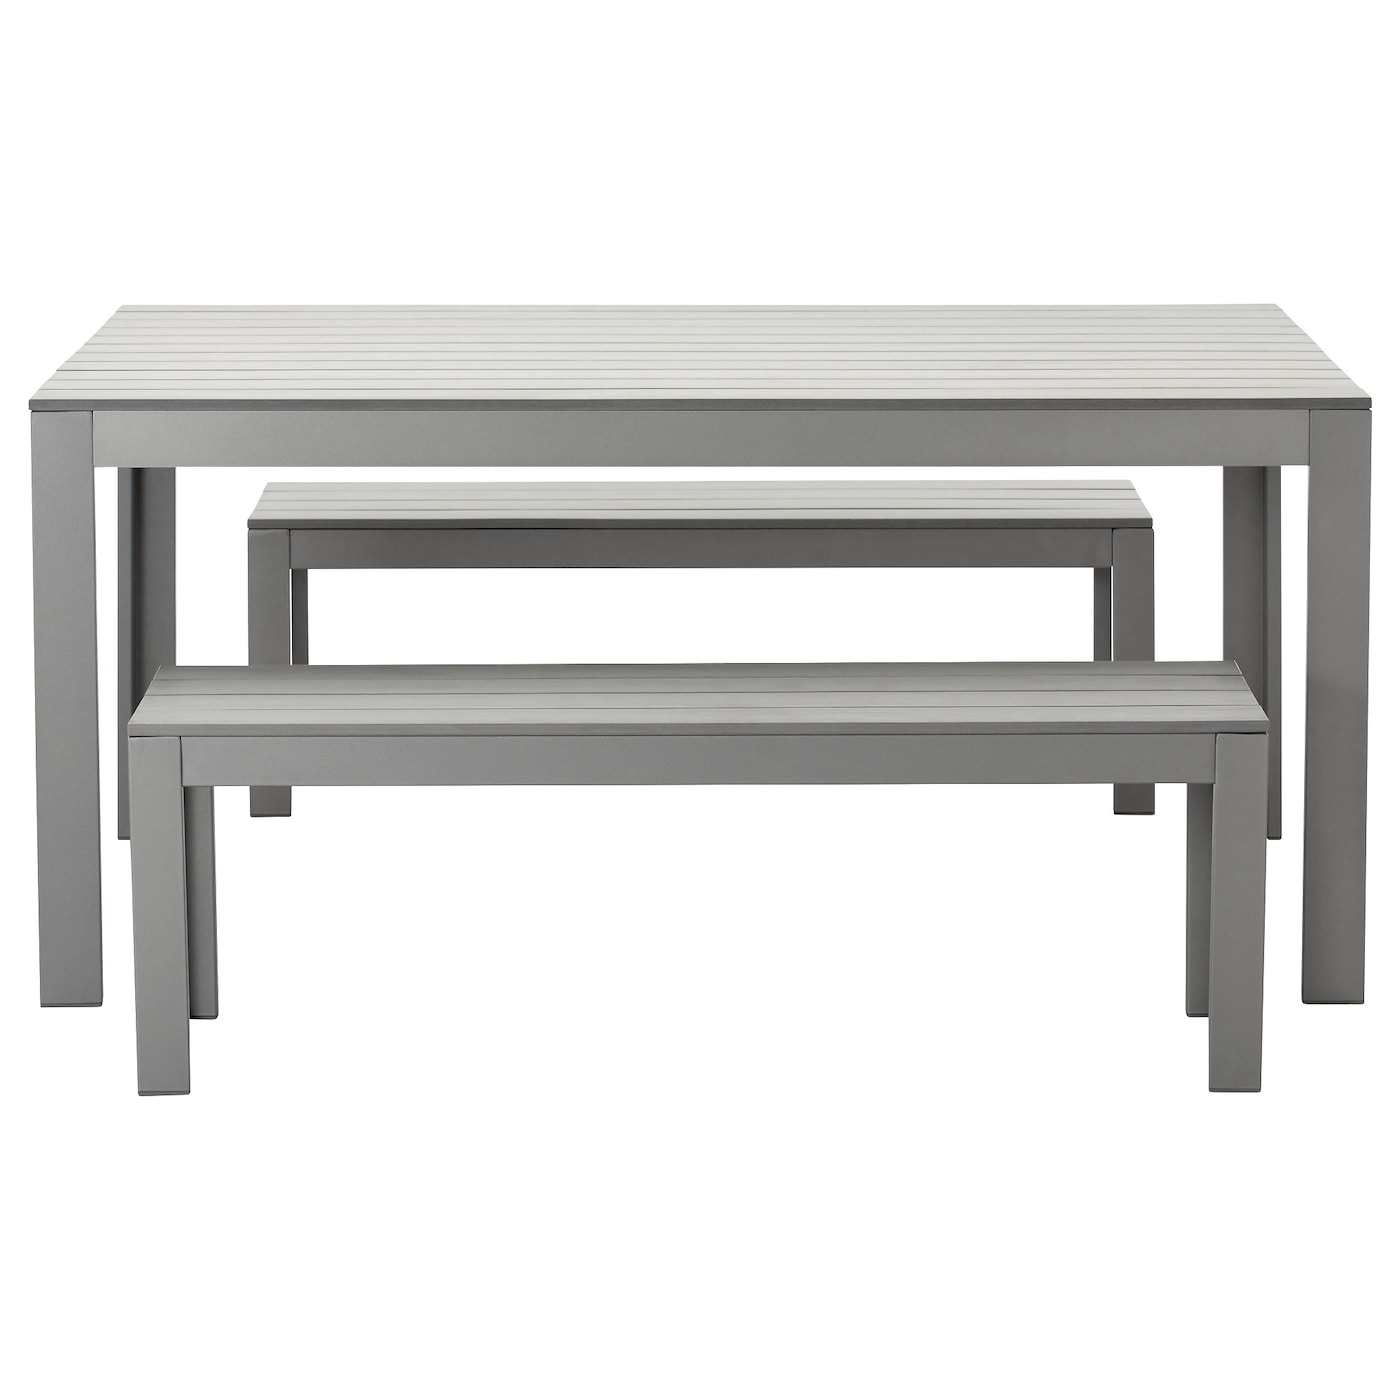 Falster table 2 benches outdoor grey ikea for Table chaise ikea